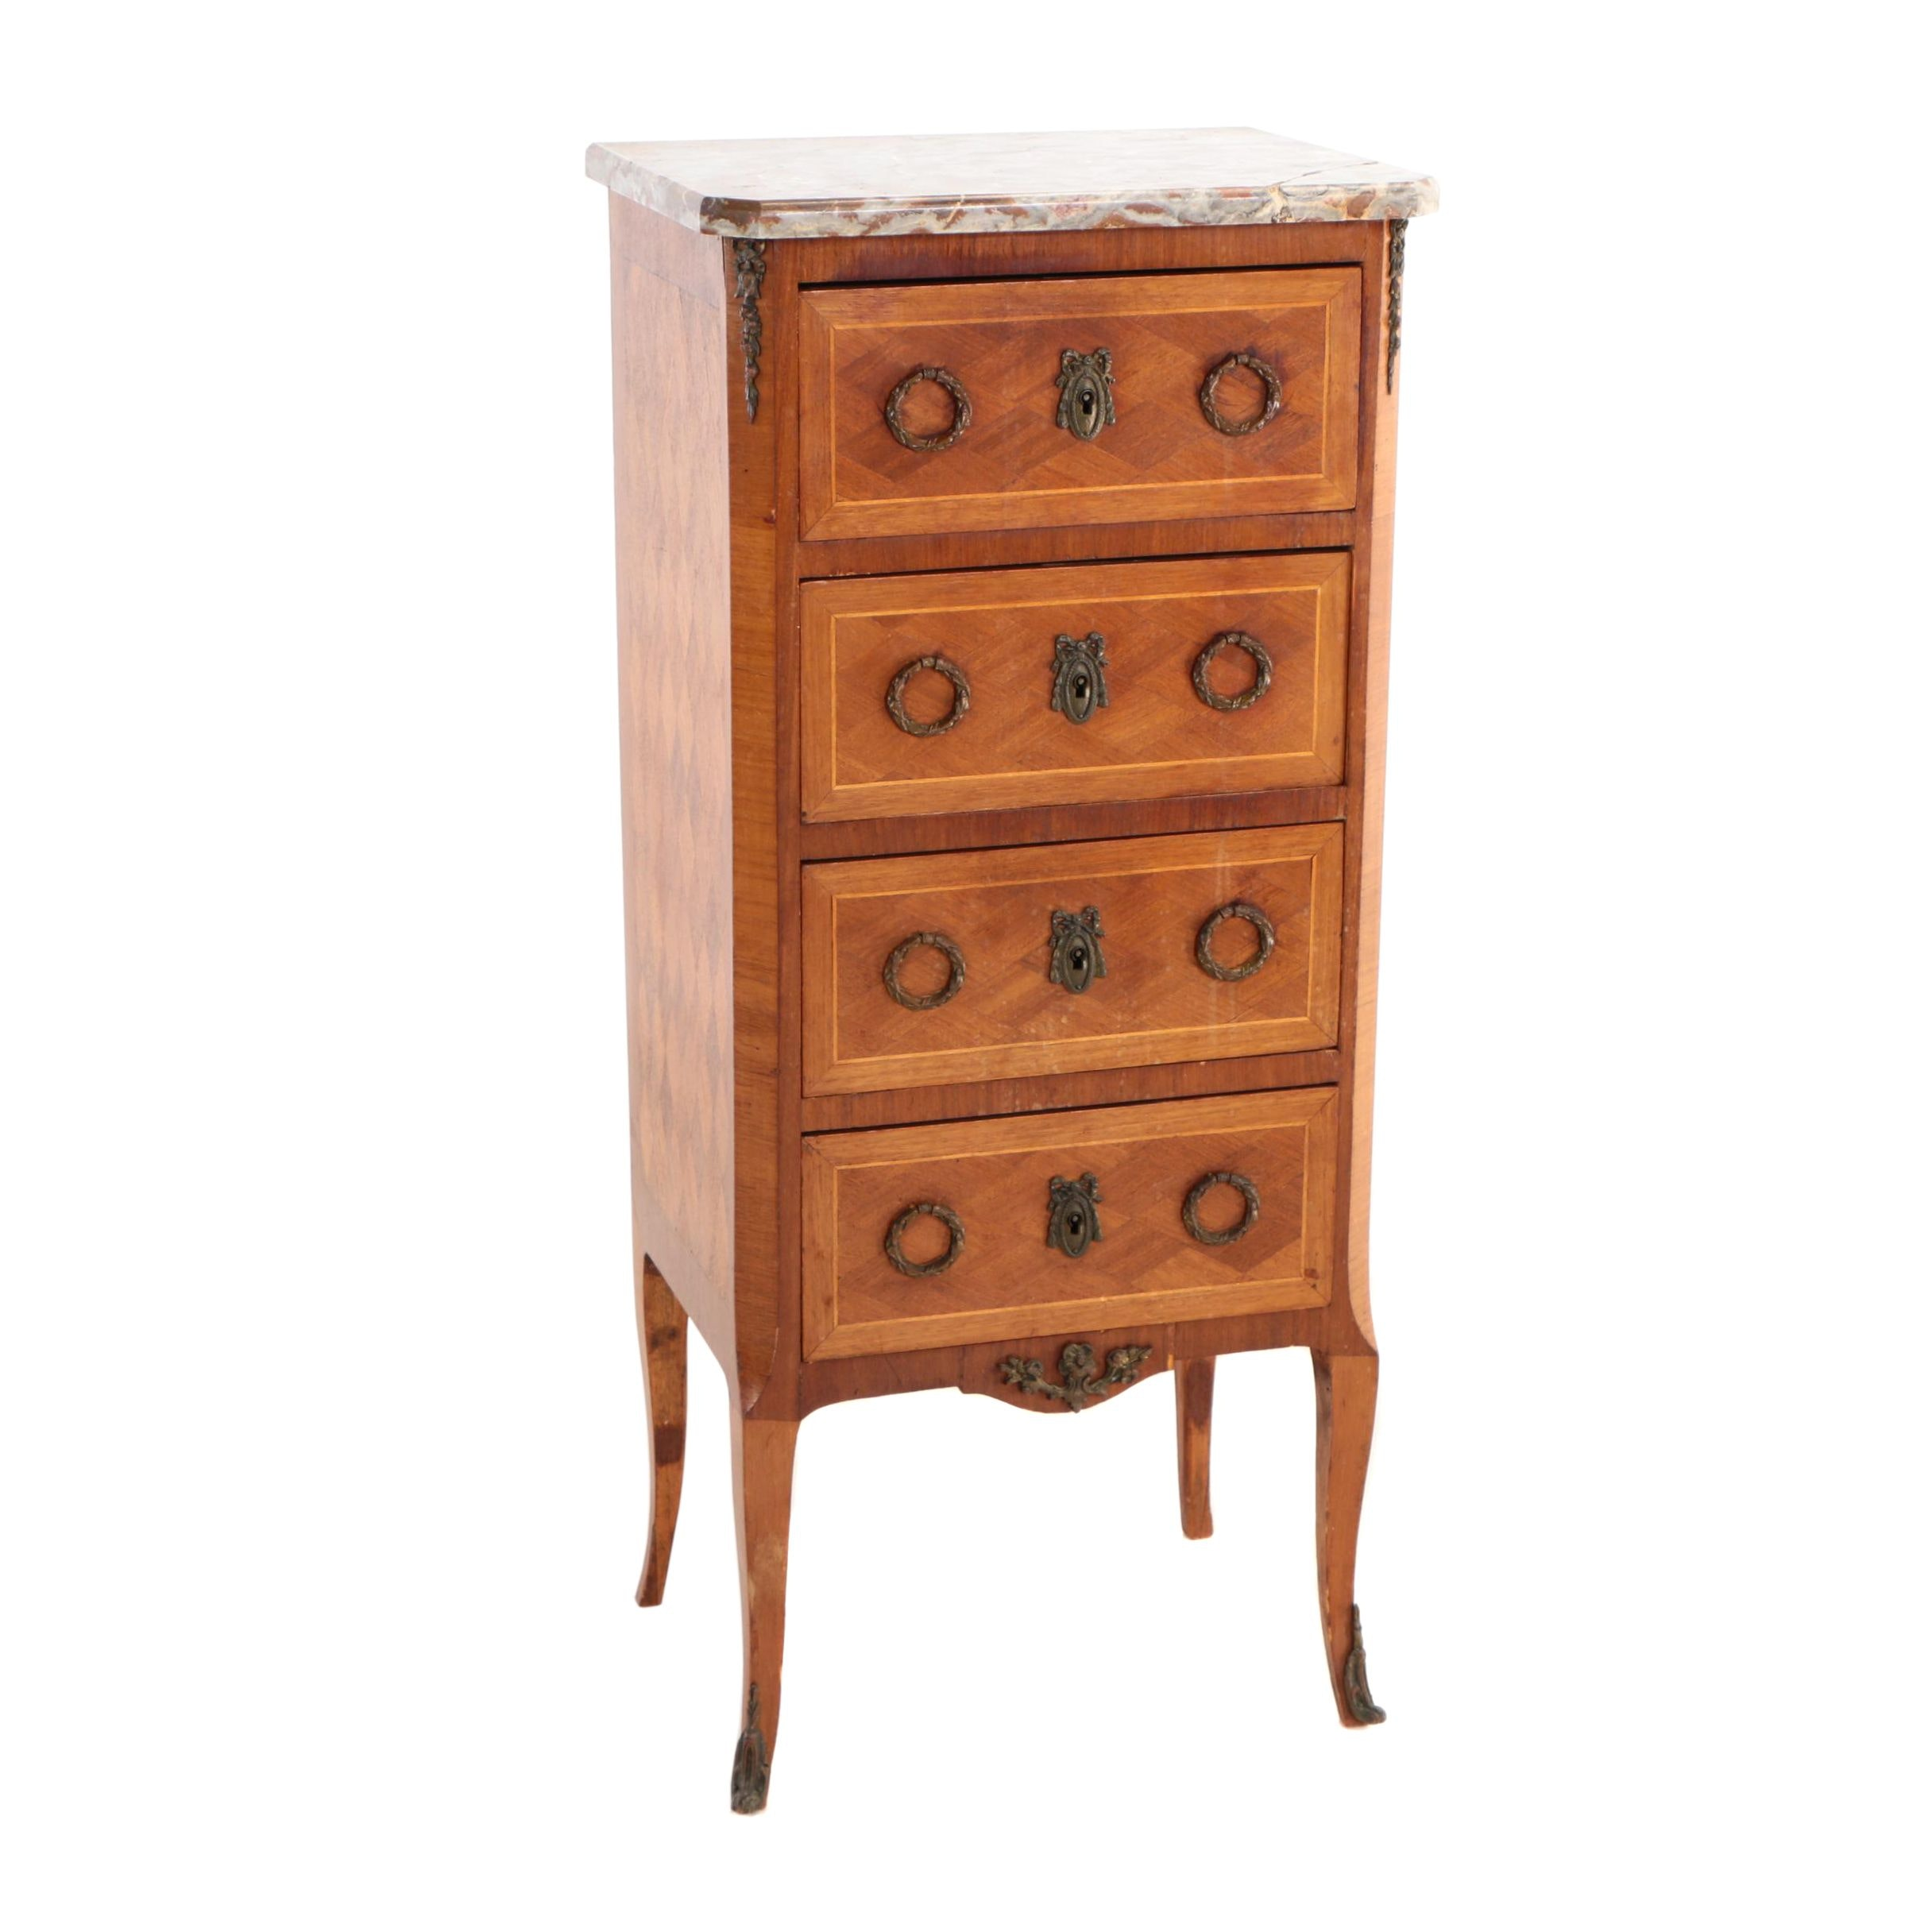 French Transitional Style Gilt-Metal, Parquetry, and Variegated Marble Commode